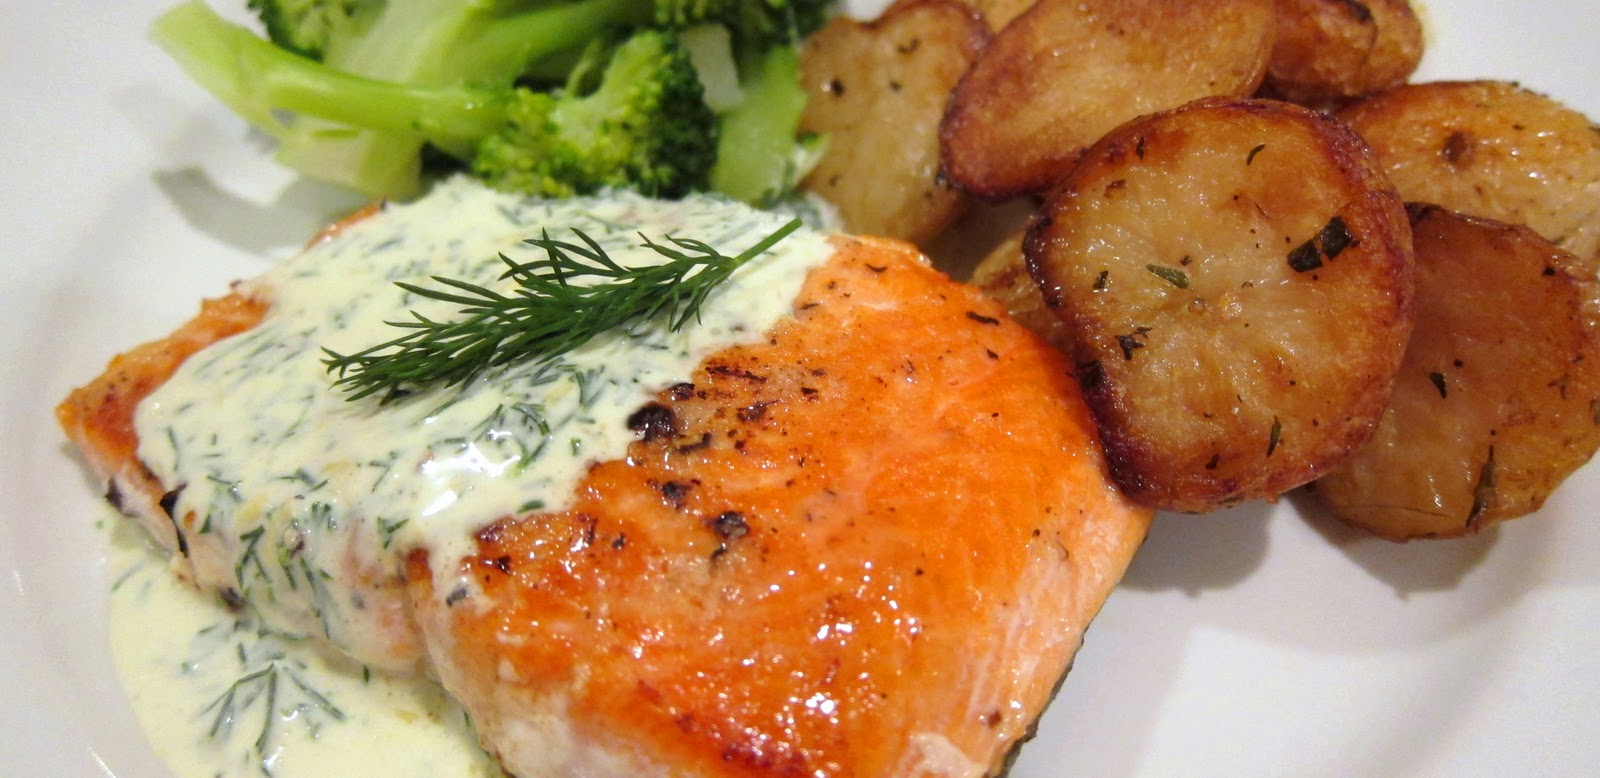 beets and bites: Pan-Seared Salmon with Dill Sauce